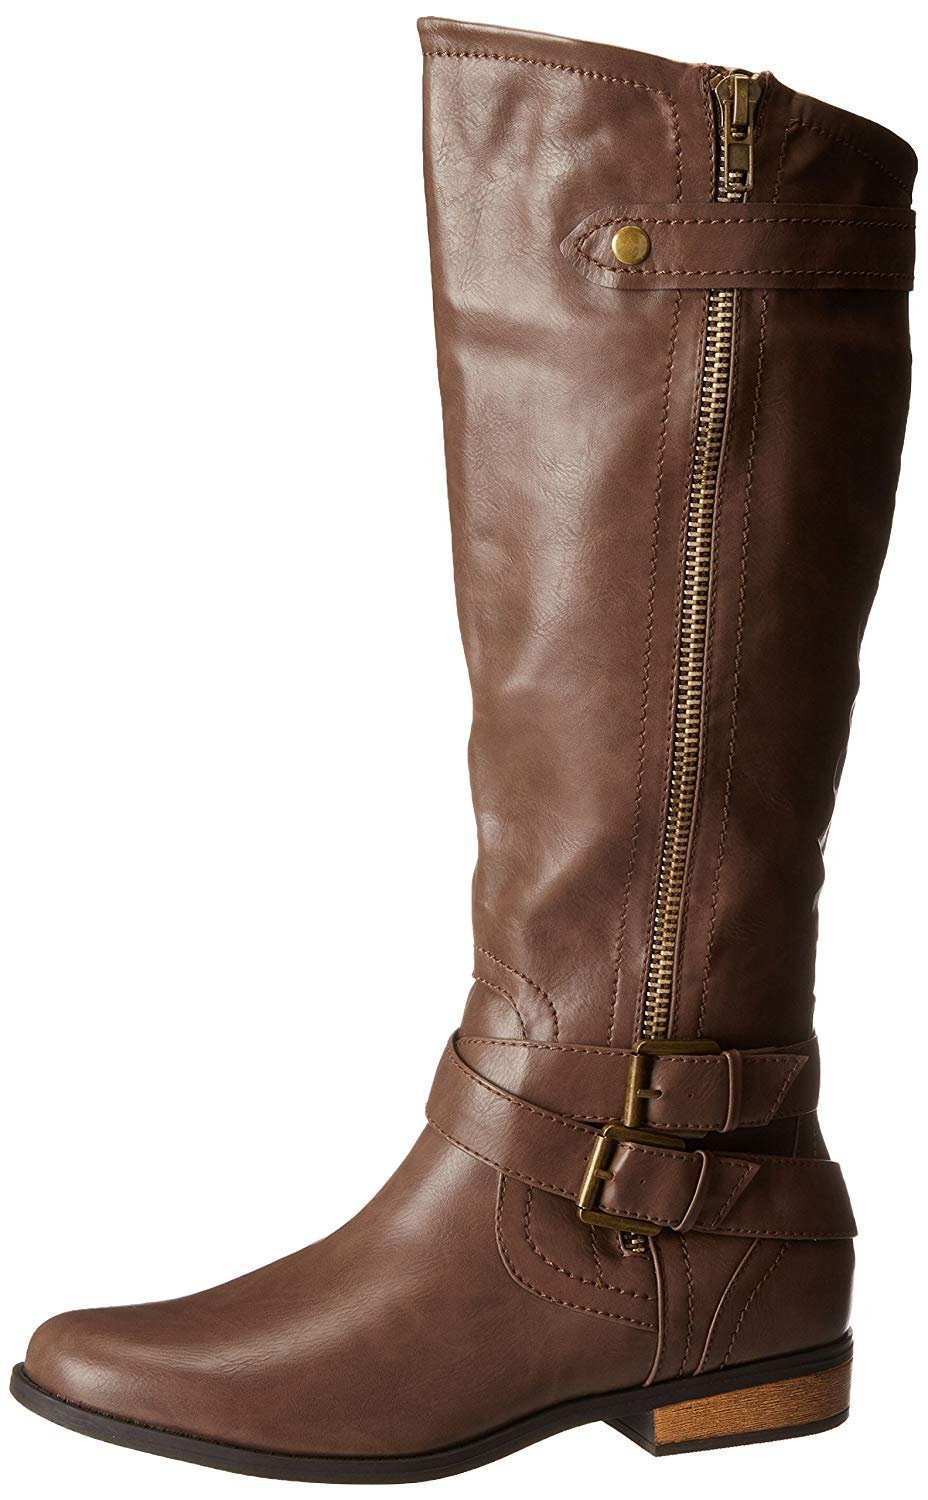 Rampage Womens Hansel Closed Toe Knee High Fashion Boots, Brown, Size 11.0